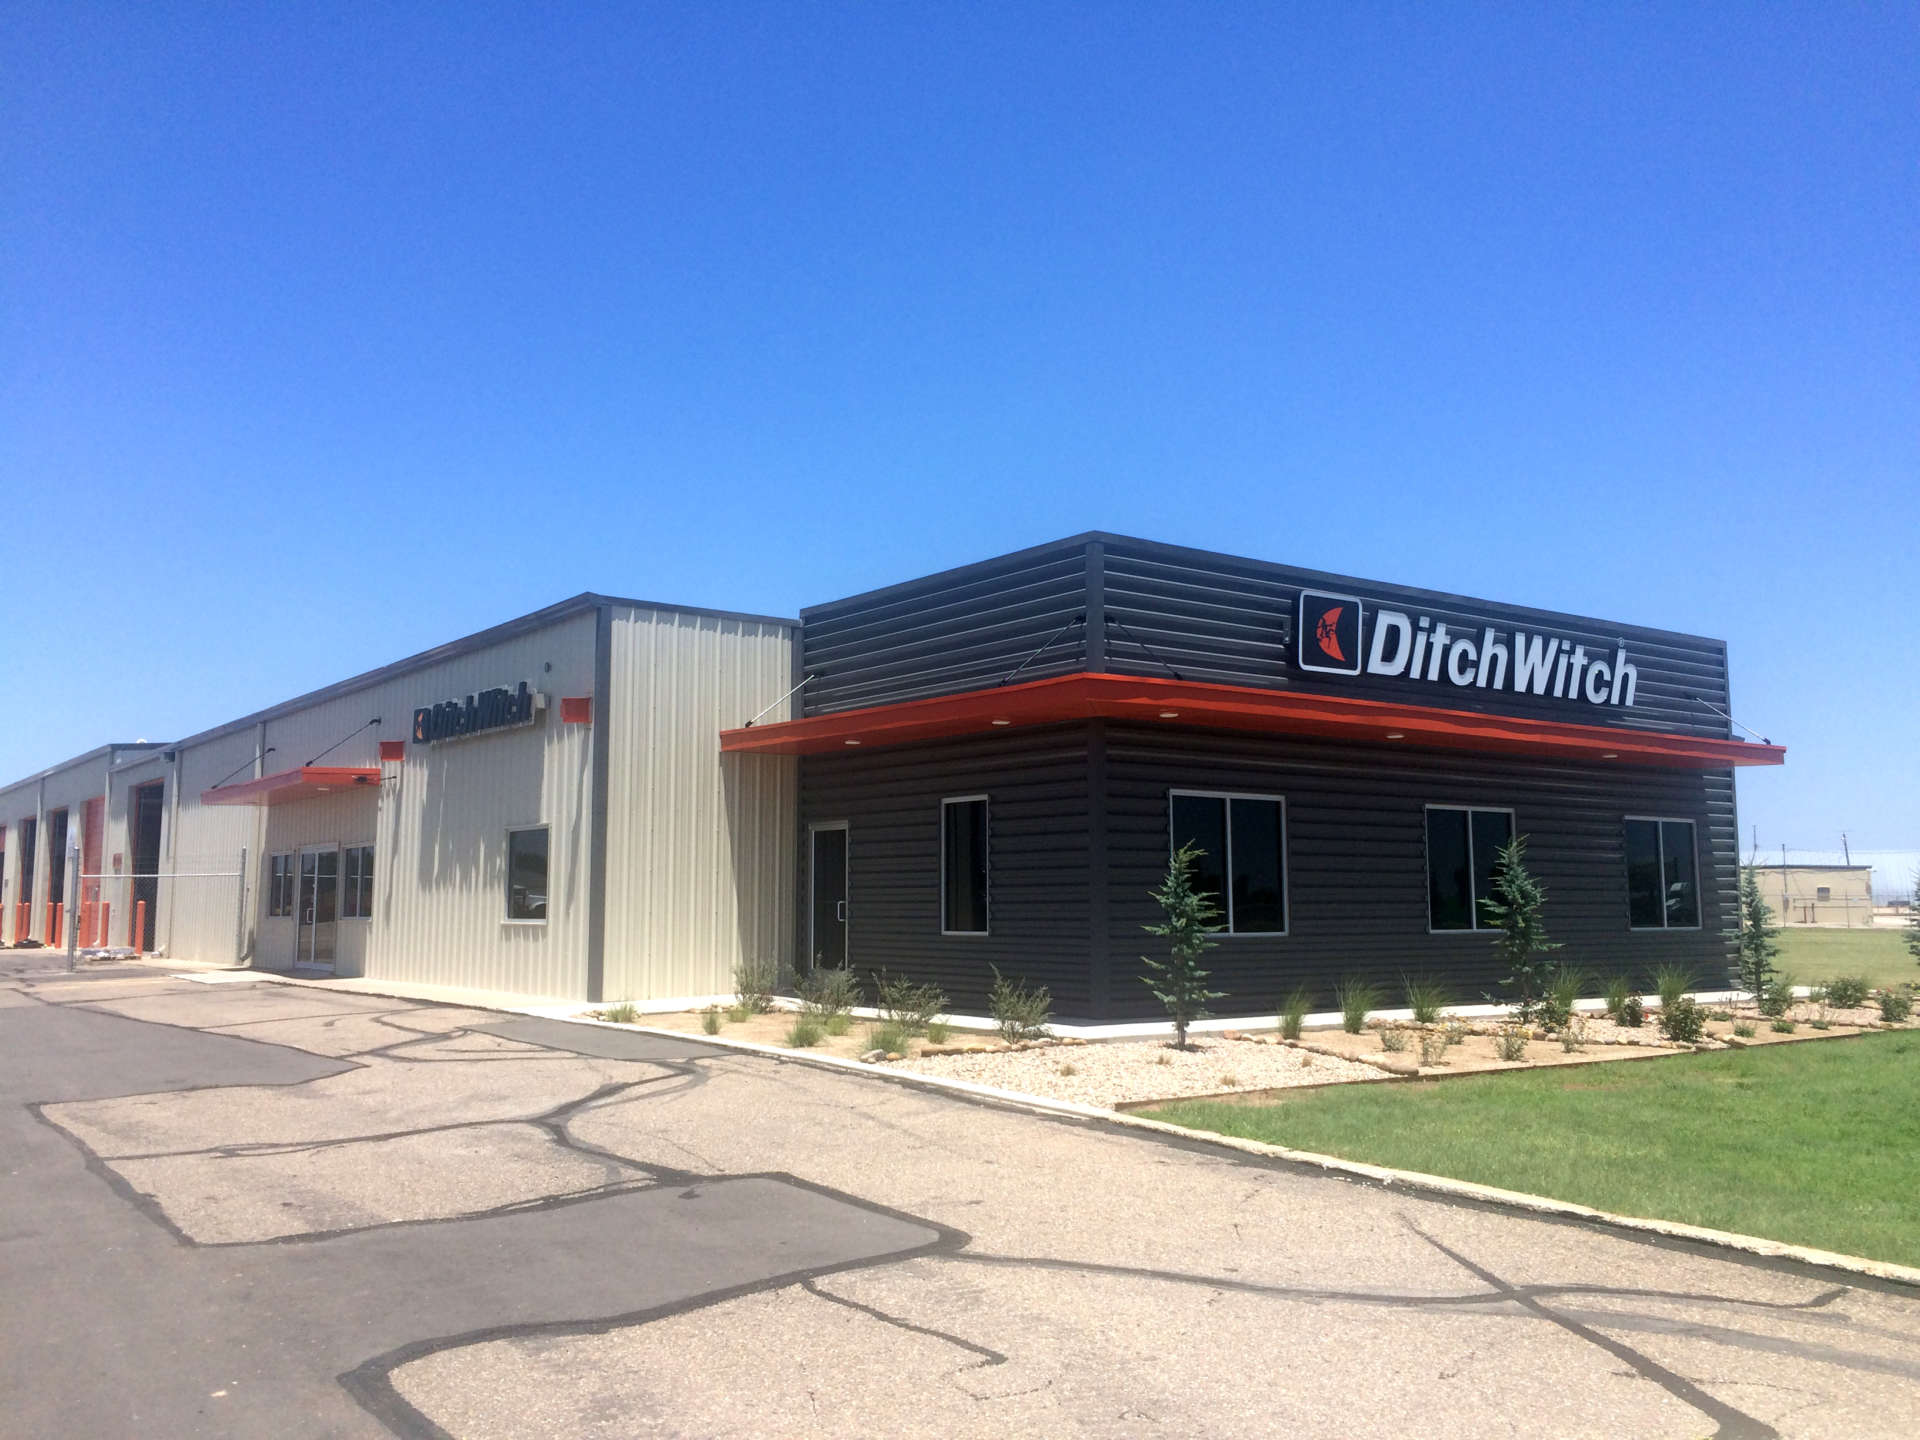 Ditch Witch Exterior in Amarillo Texas